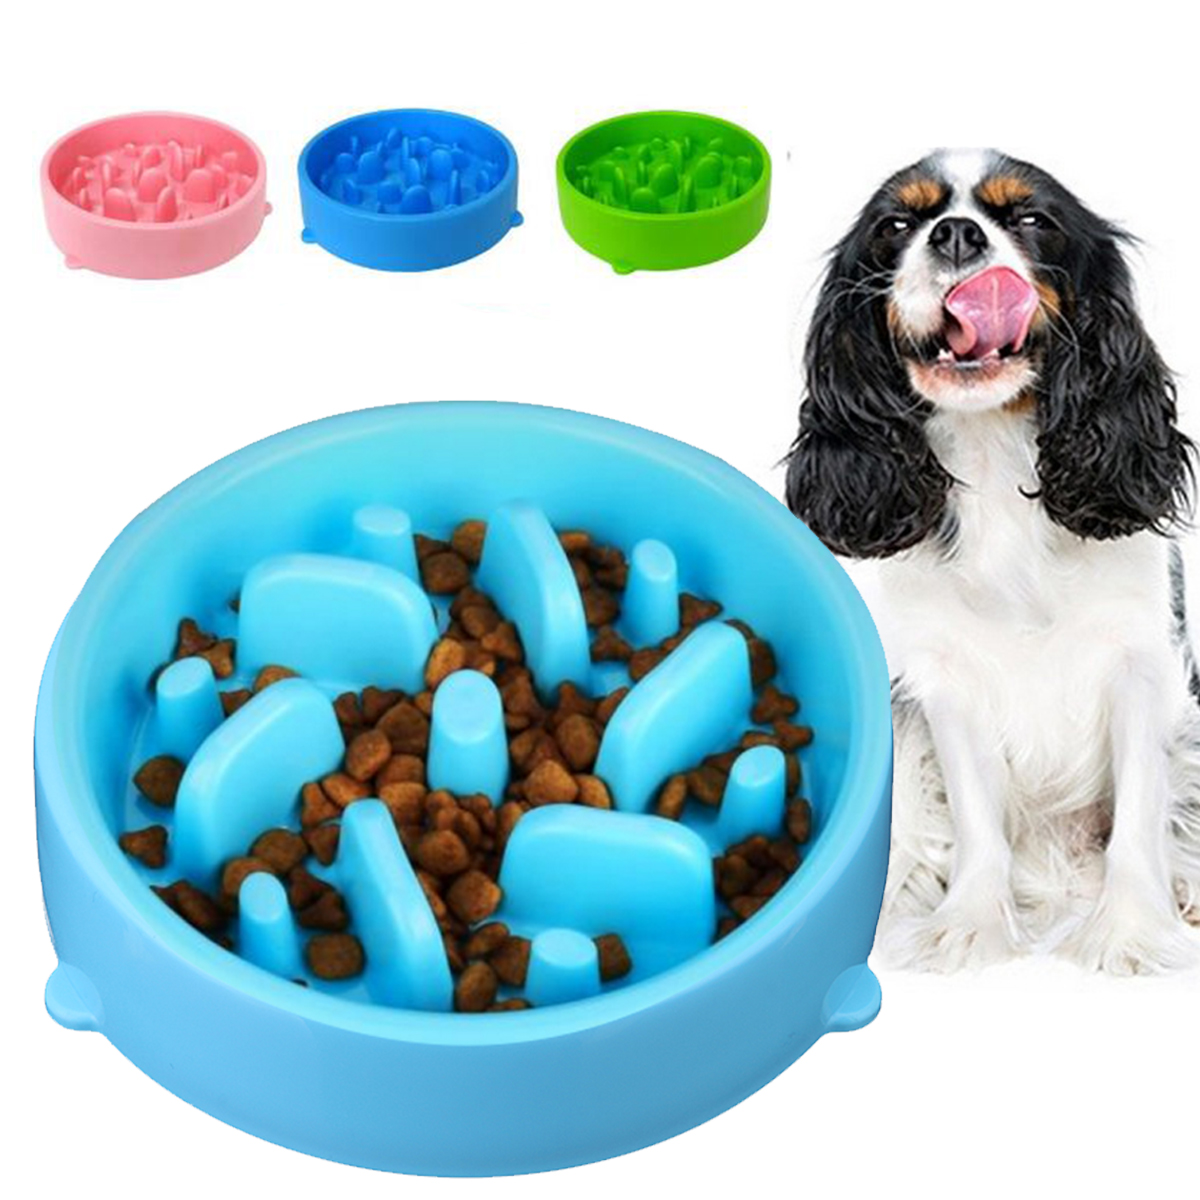 Pet Dog Cat Slow Eating Bowl Bloat Puzzle Healthy Feeder Interactive Fun Jungle